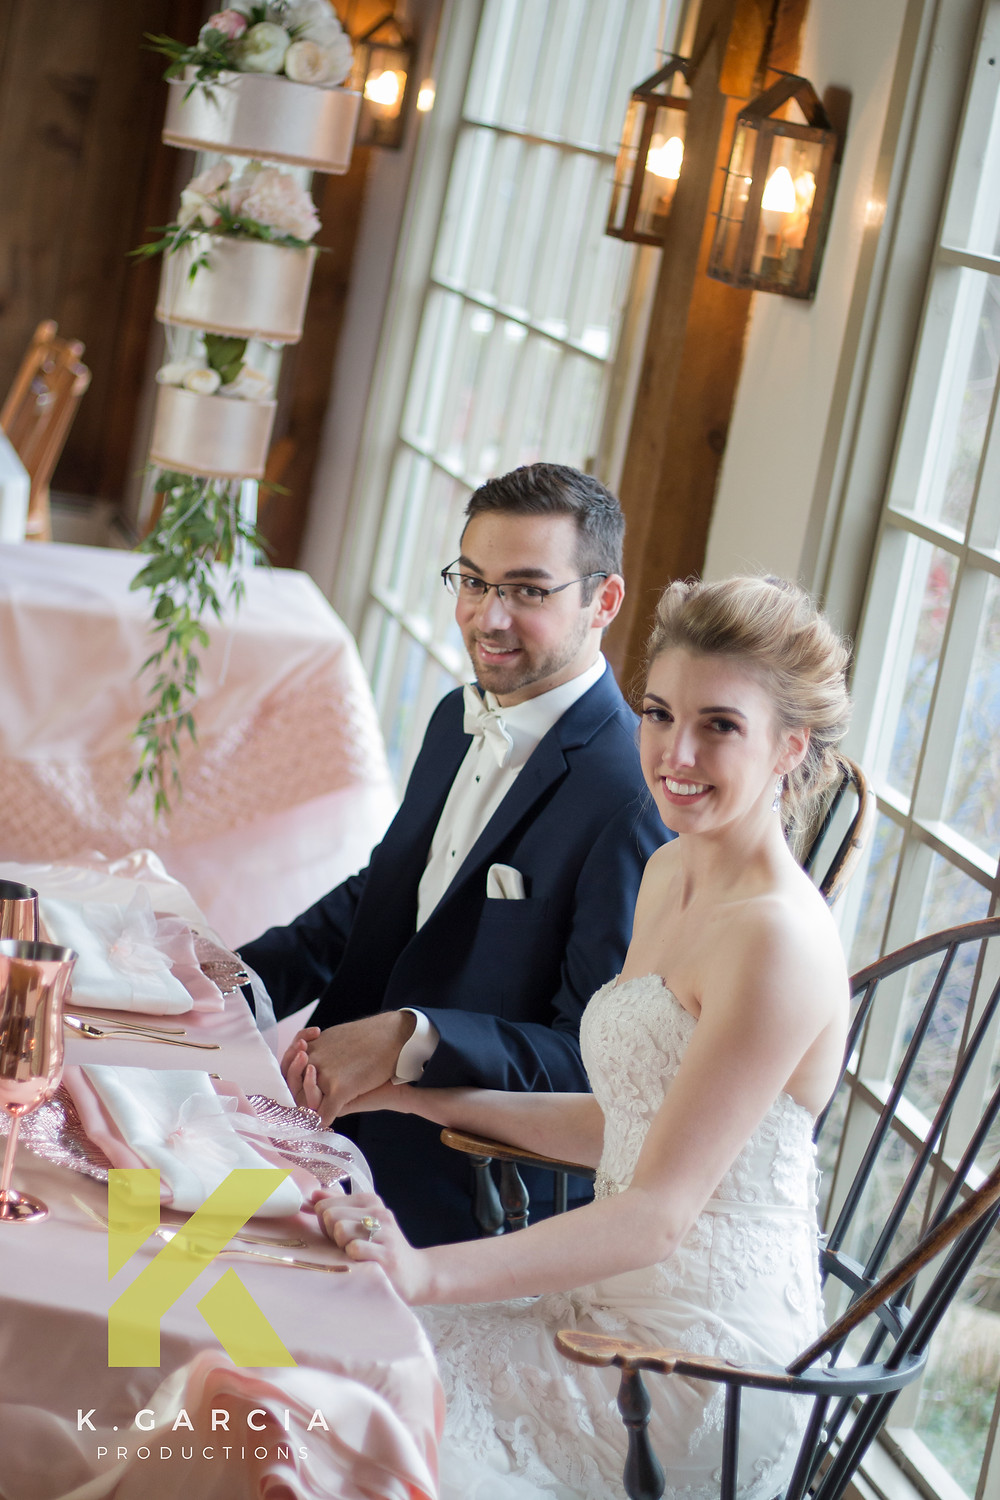 K Garcia Productions Wedding Photographer Wingate's Cakes Bride and groom